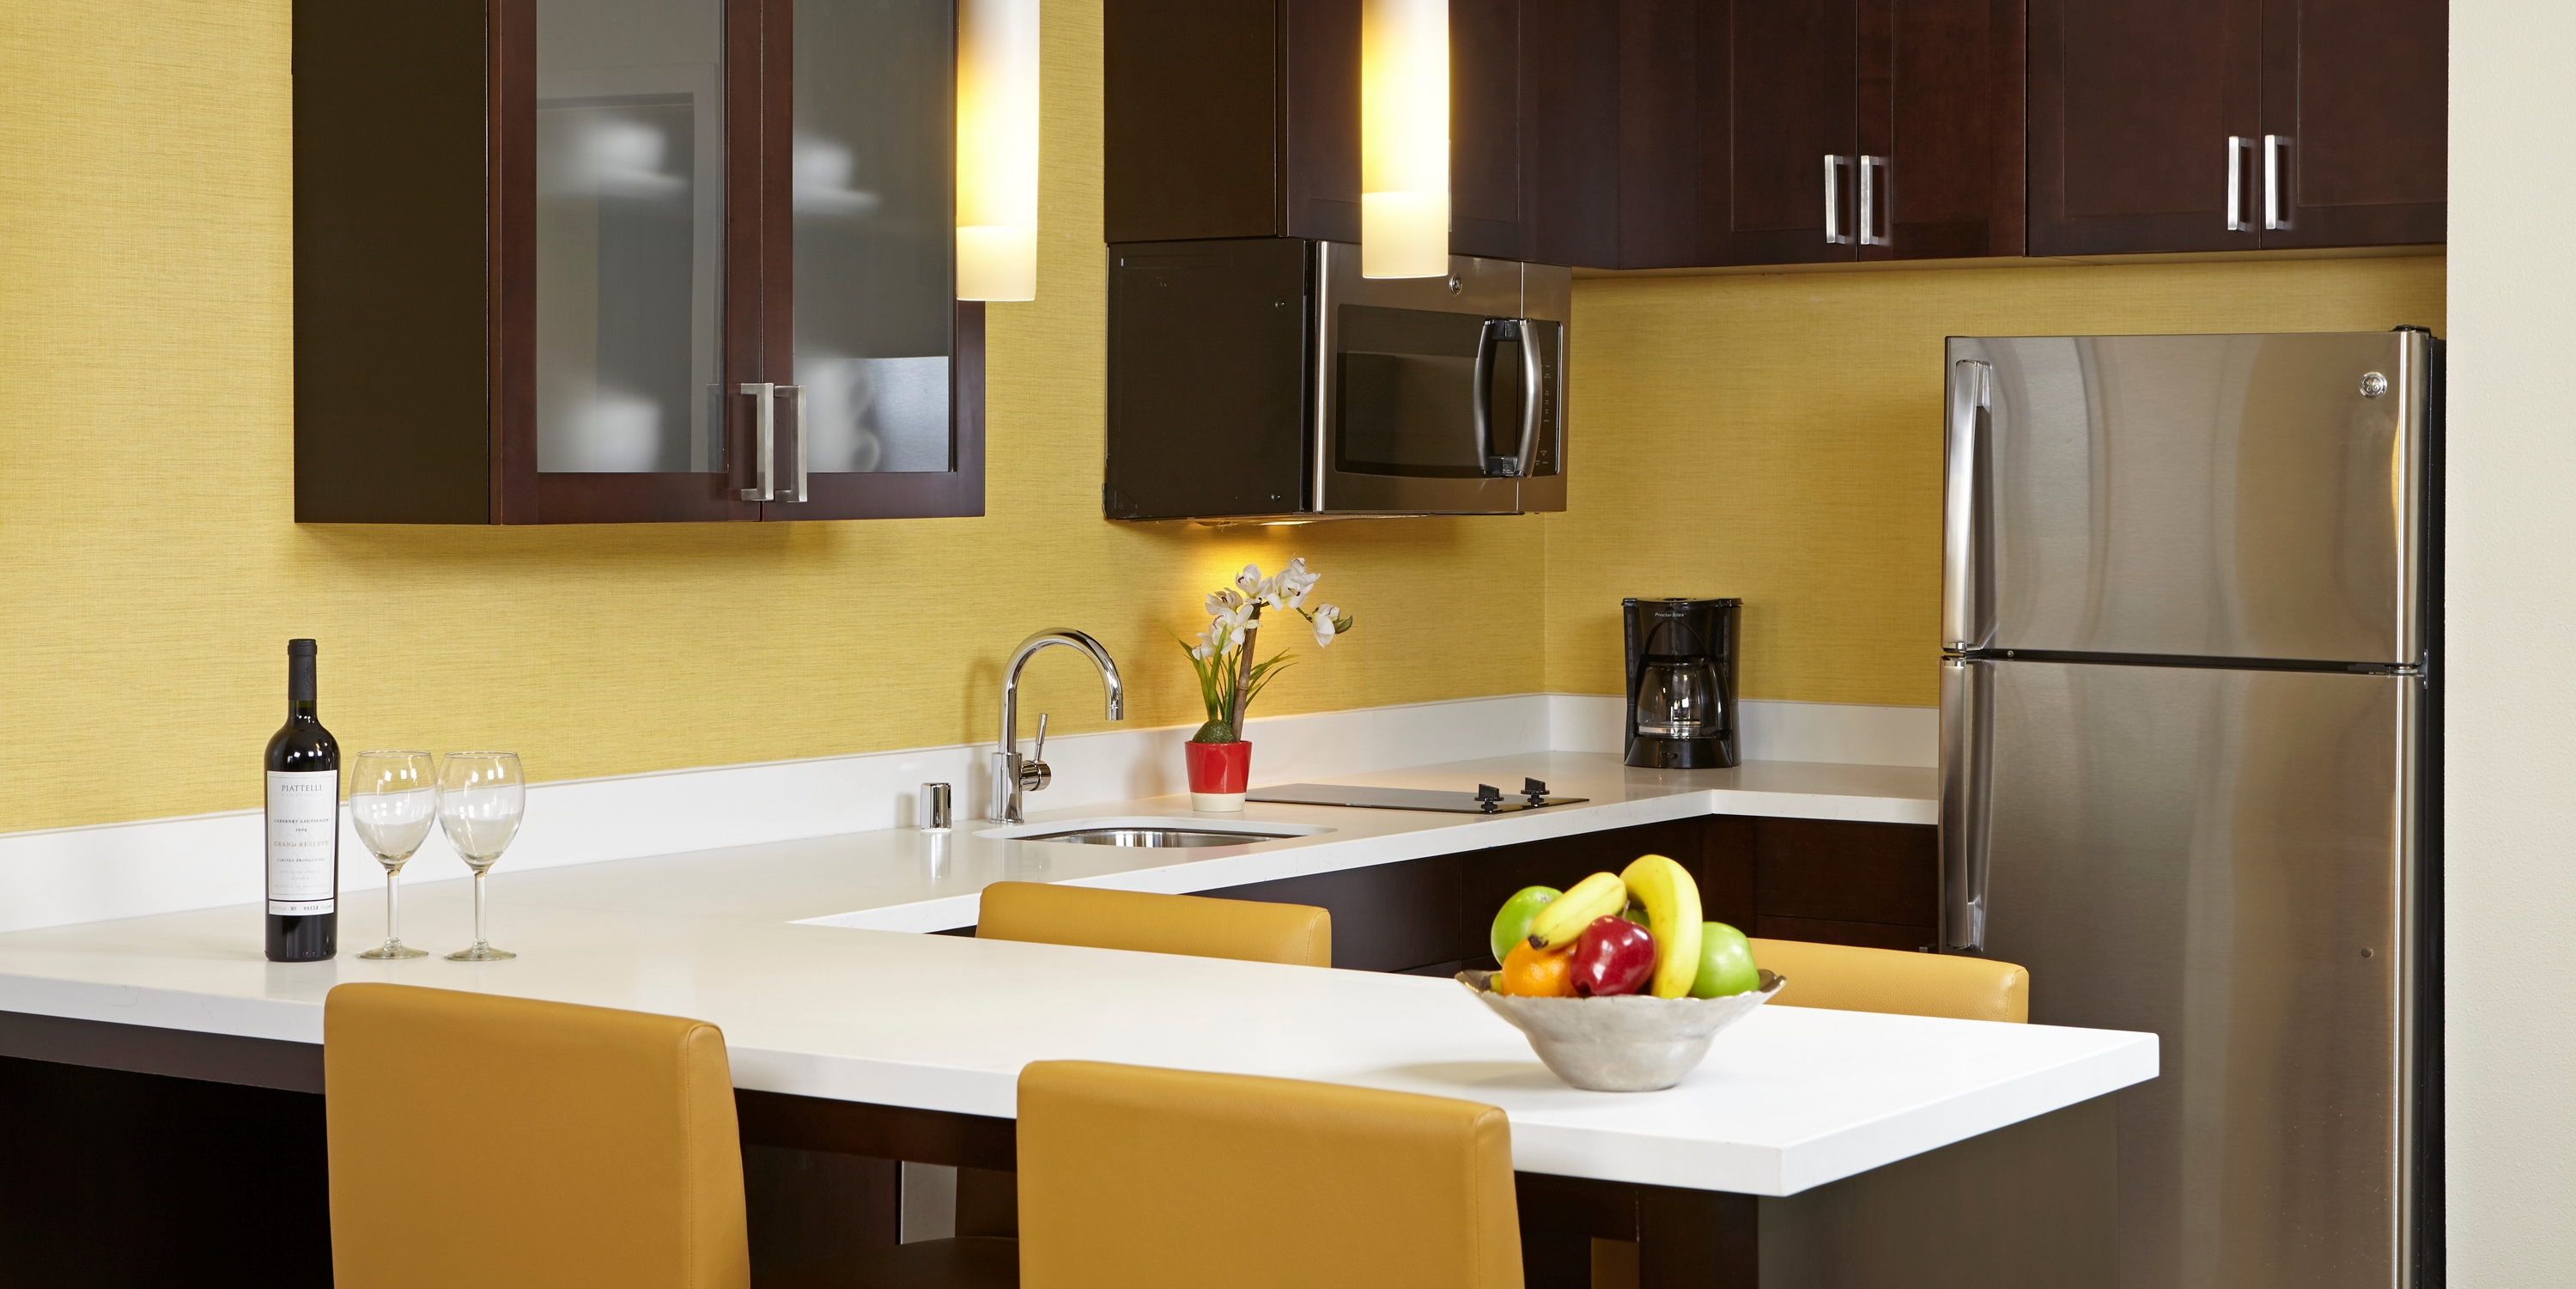 hotels with kitchen in los angeles shelf display ideas hotel lax airport suites residence inn